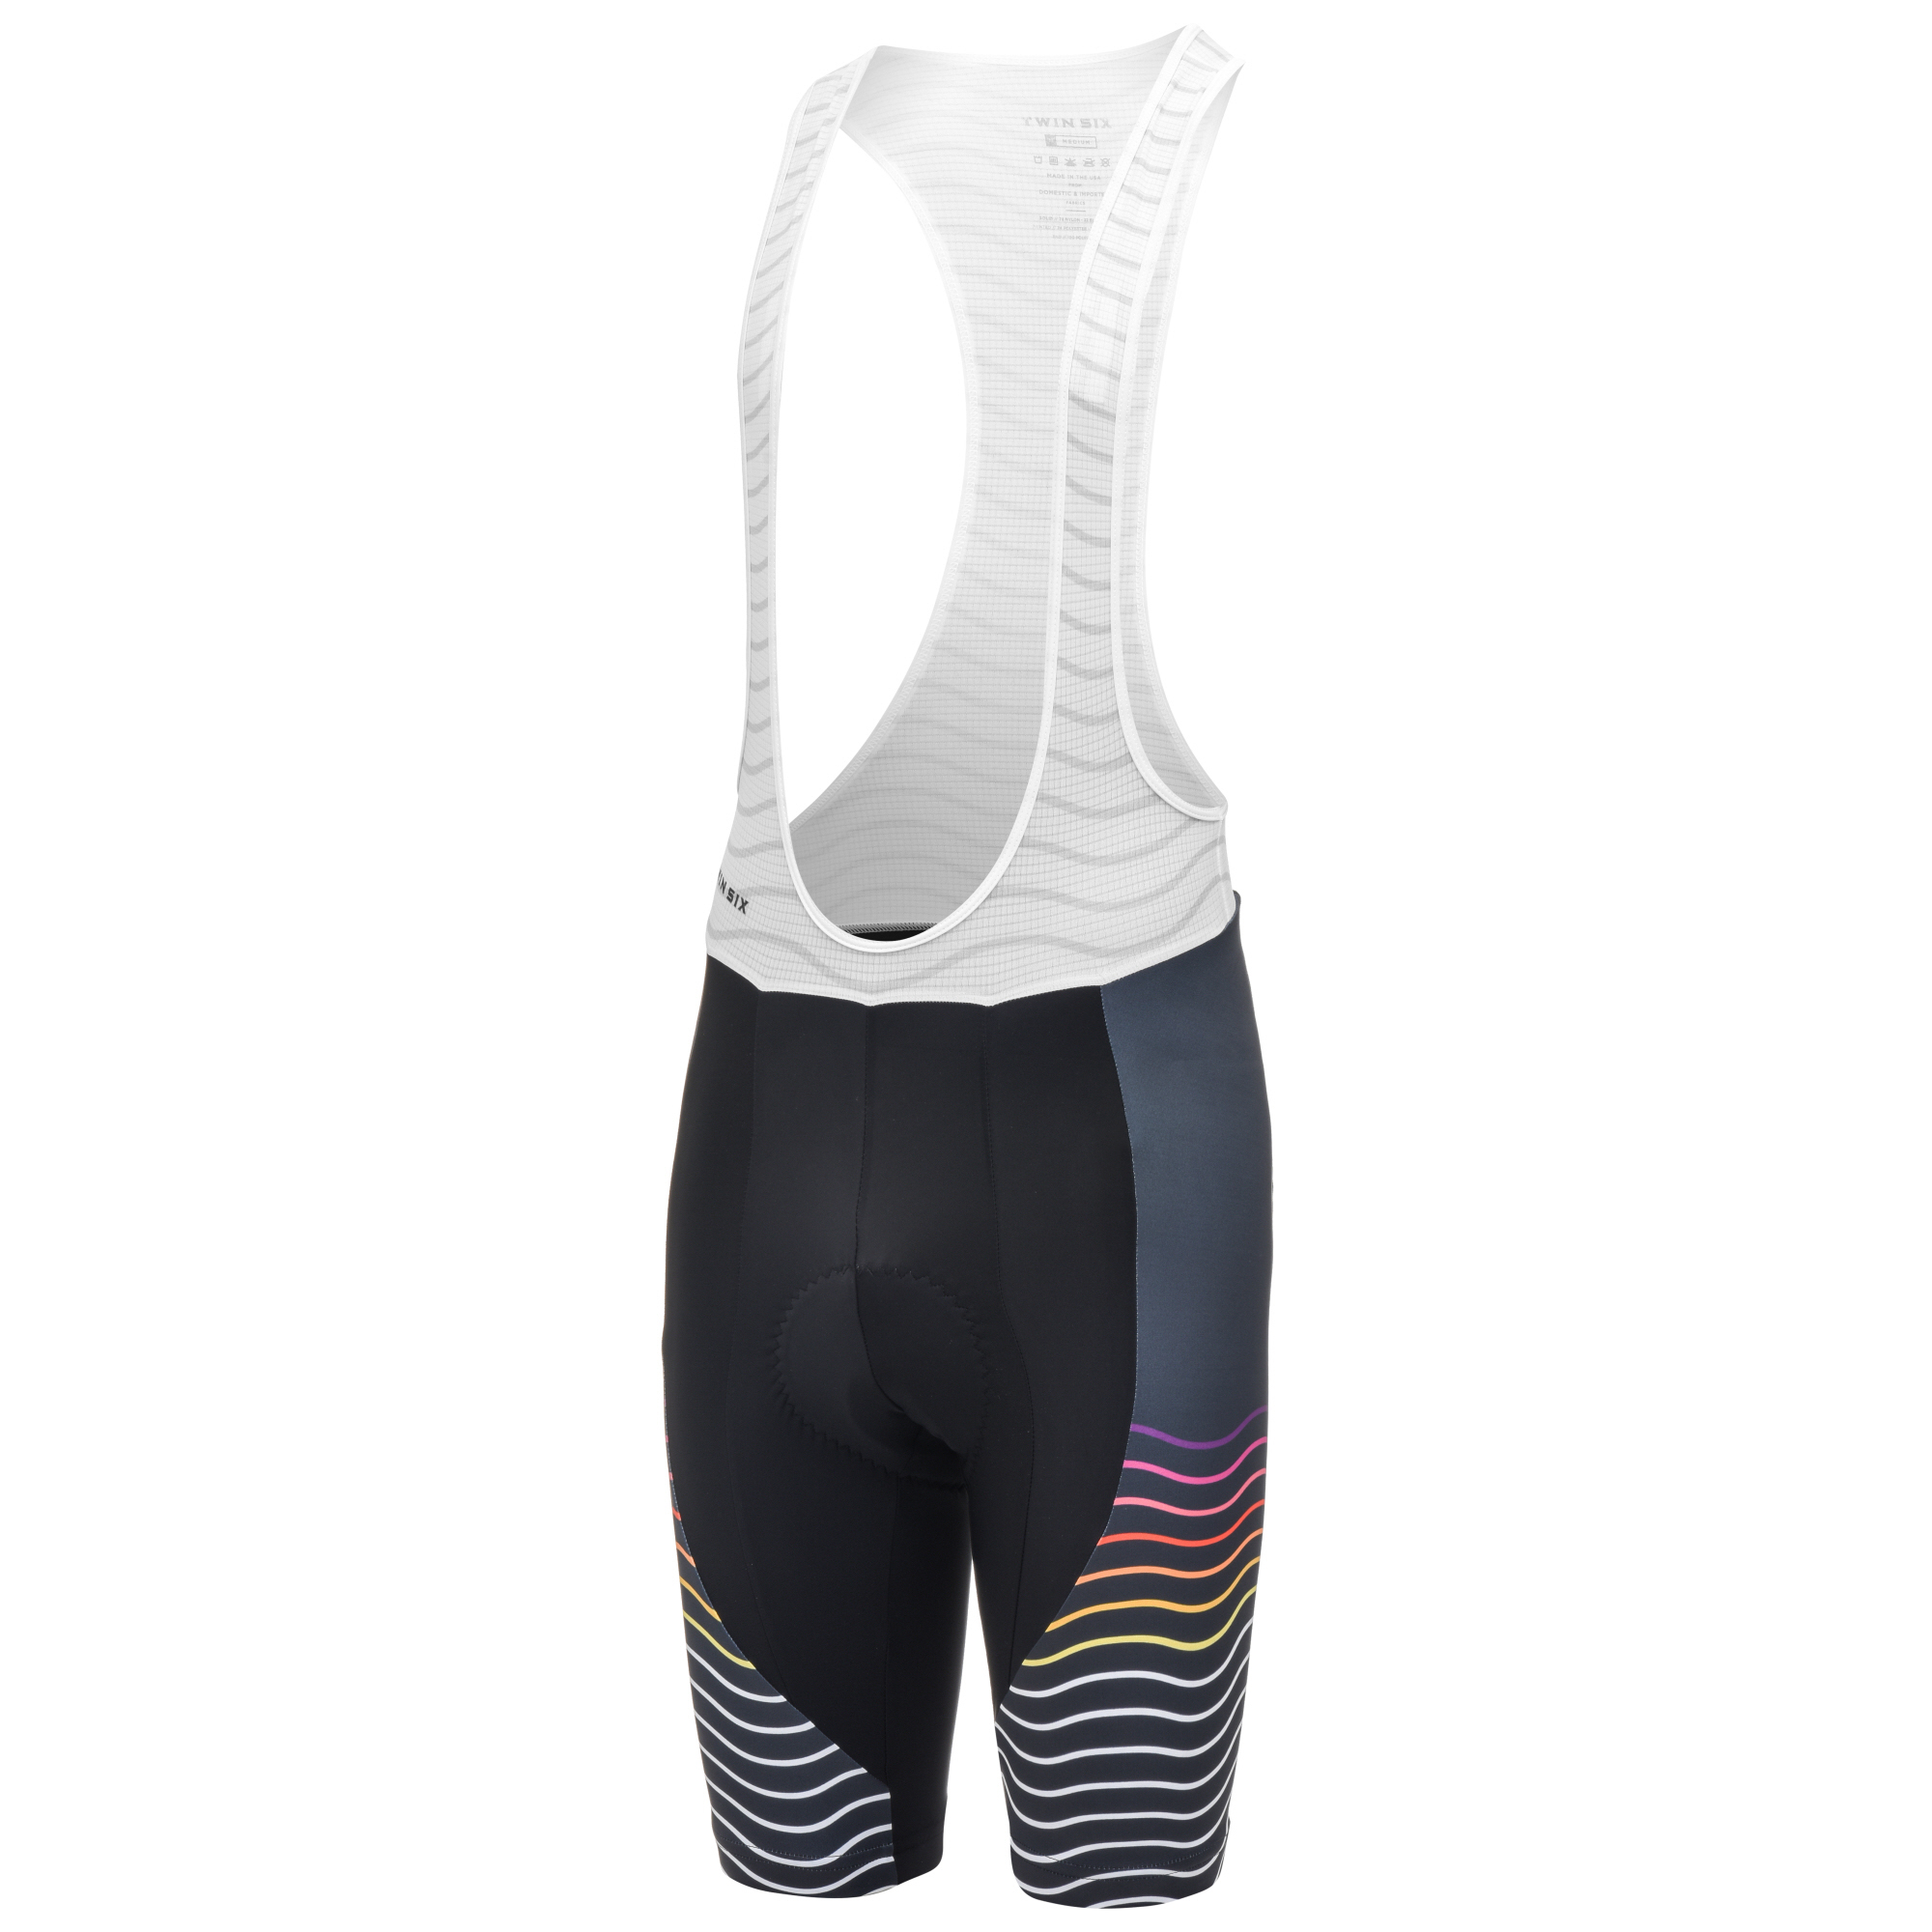 Twin Six The Rollers Bib Shorts | Trousers